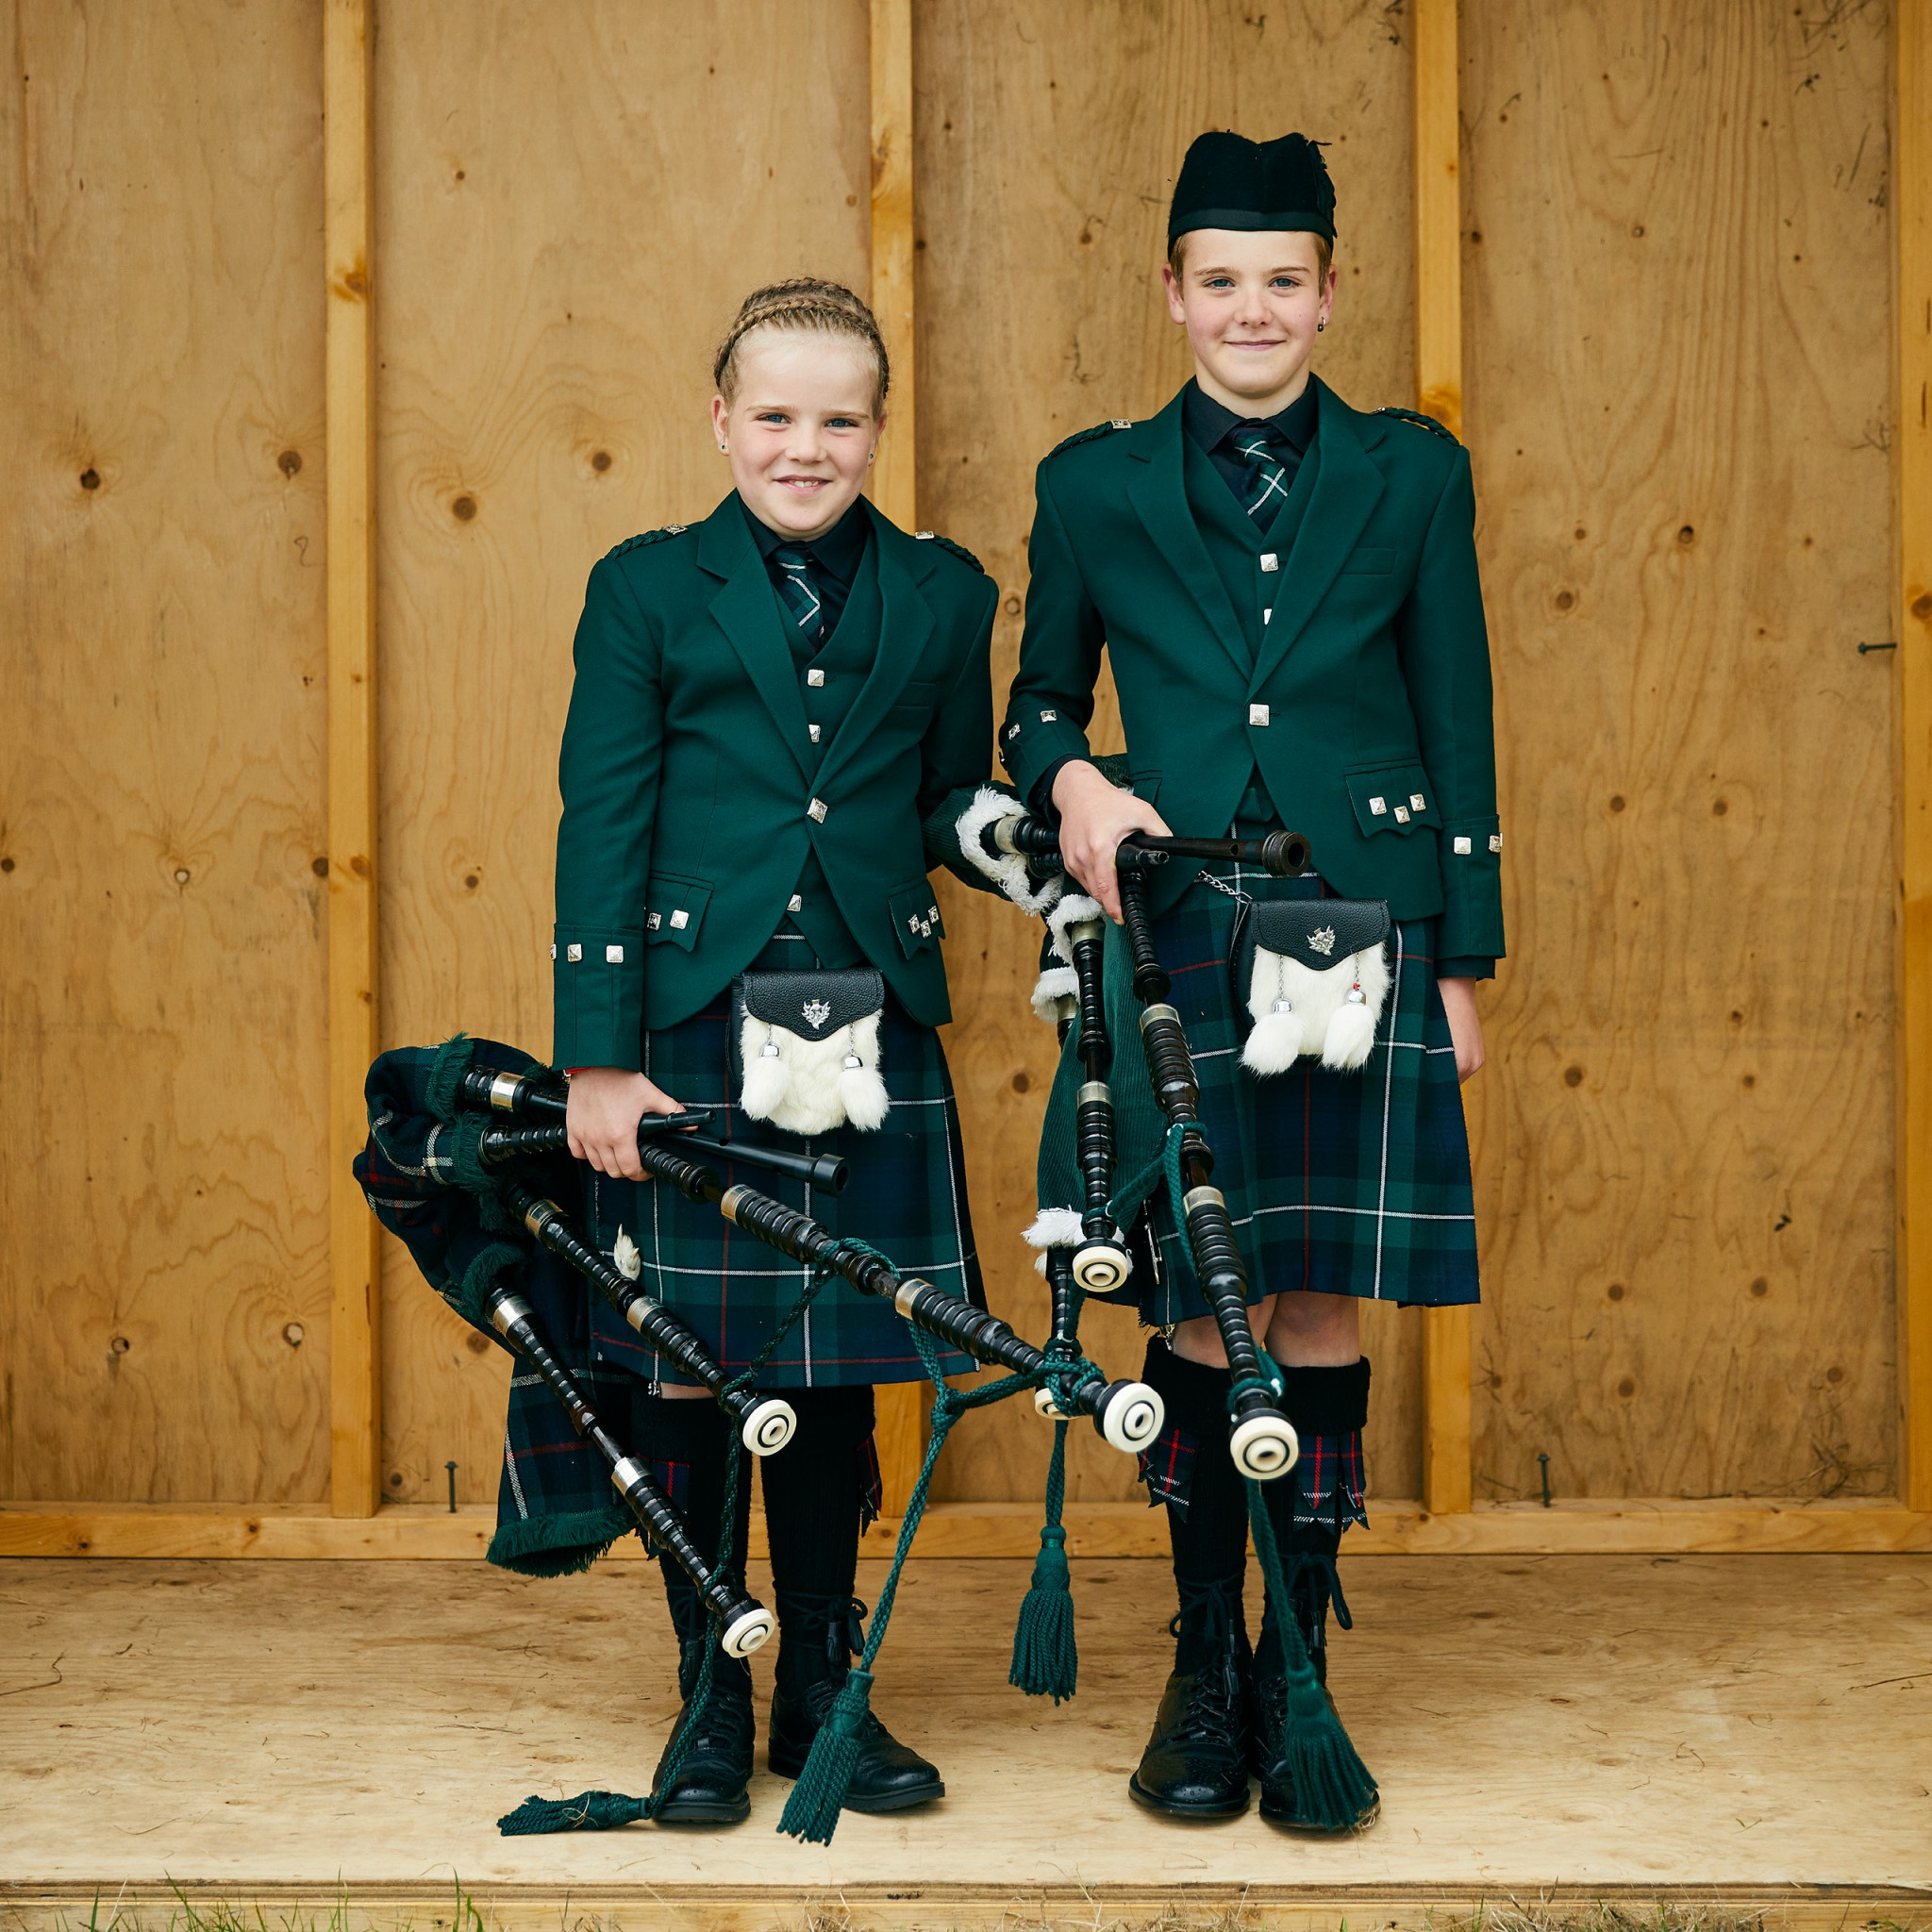 Image of two girls wearing kilts and holding bag pipes